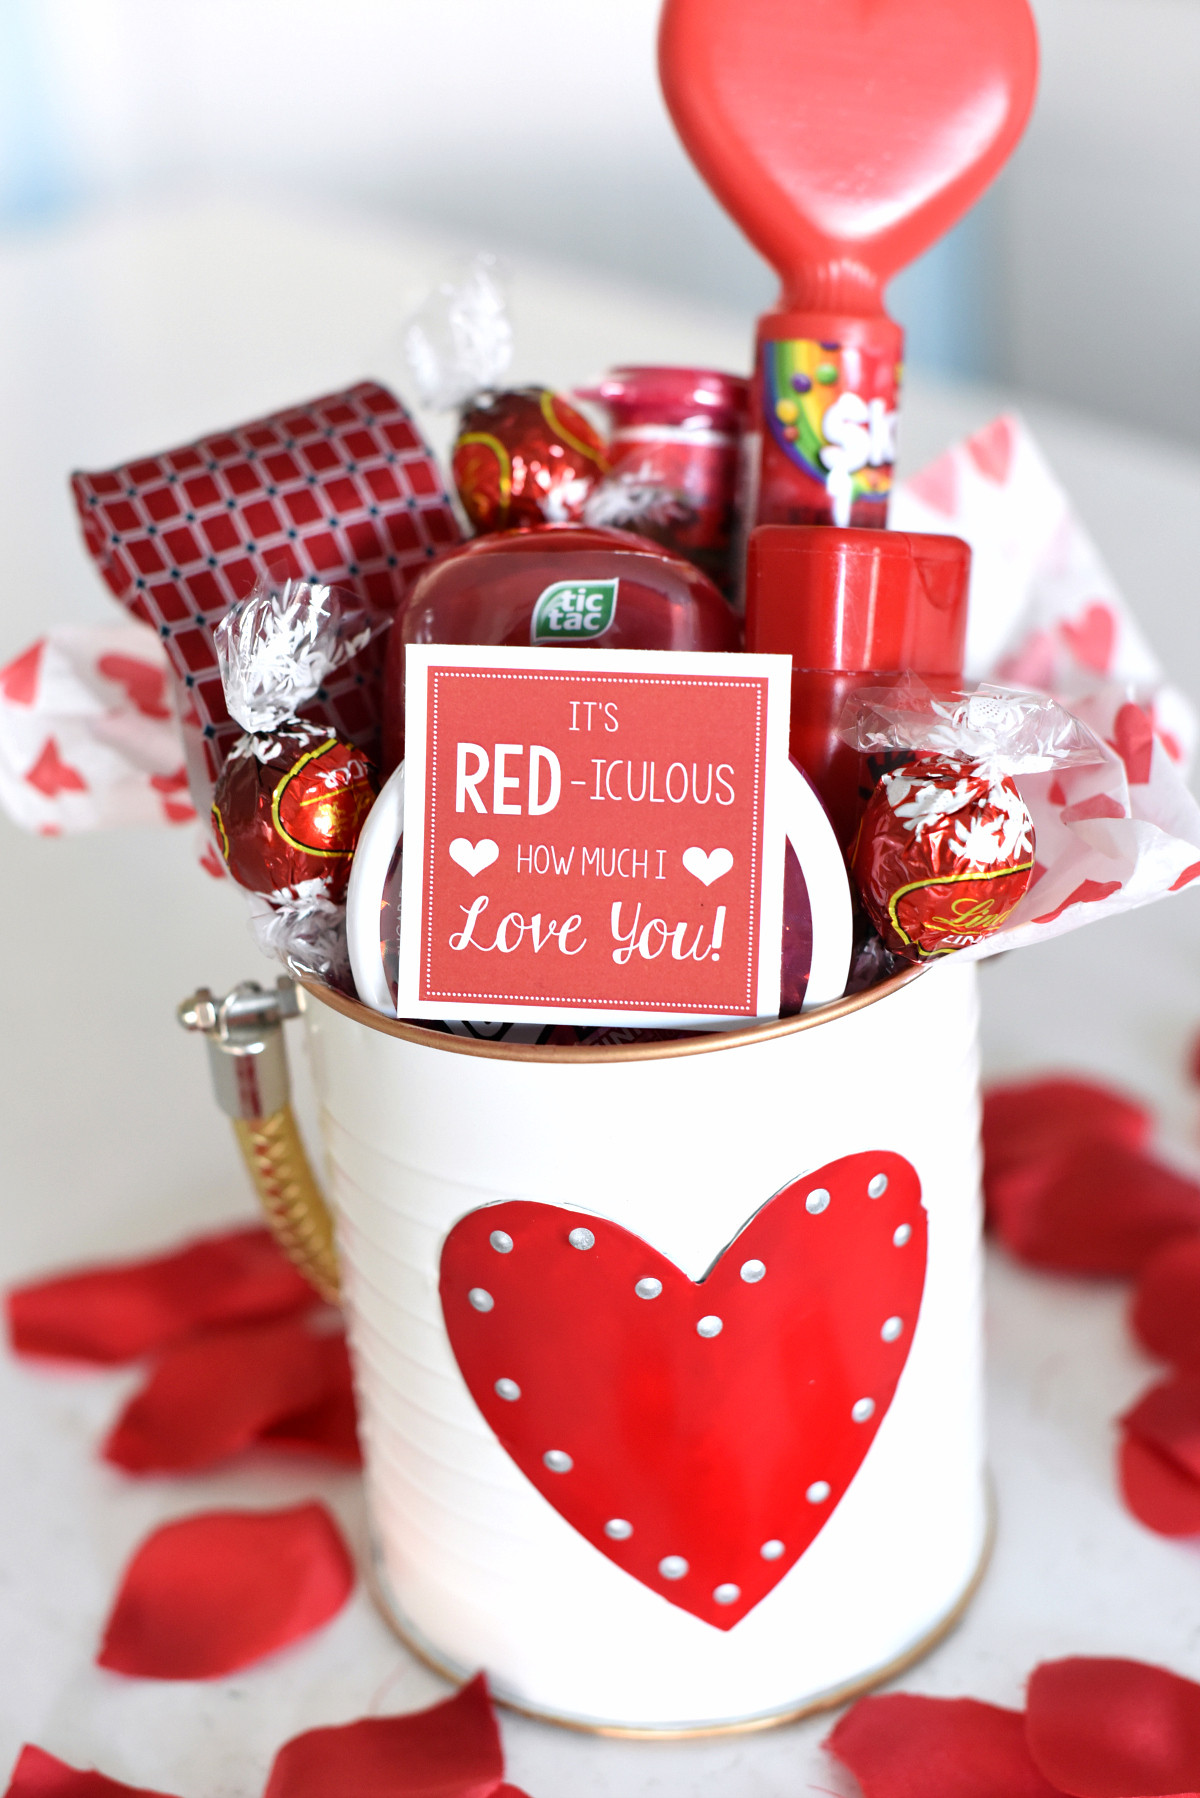 Ideas For Valentine Gift  Cute Valentine s Day Gift Idea RED iculous Basket